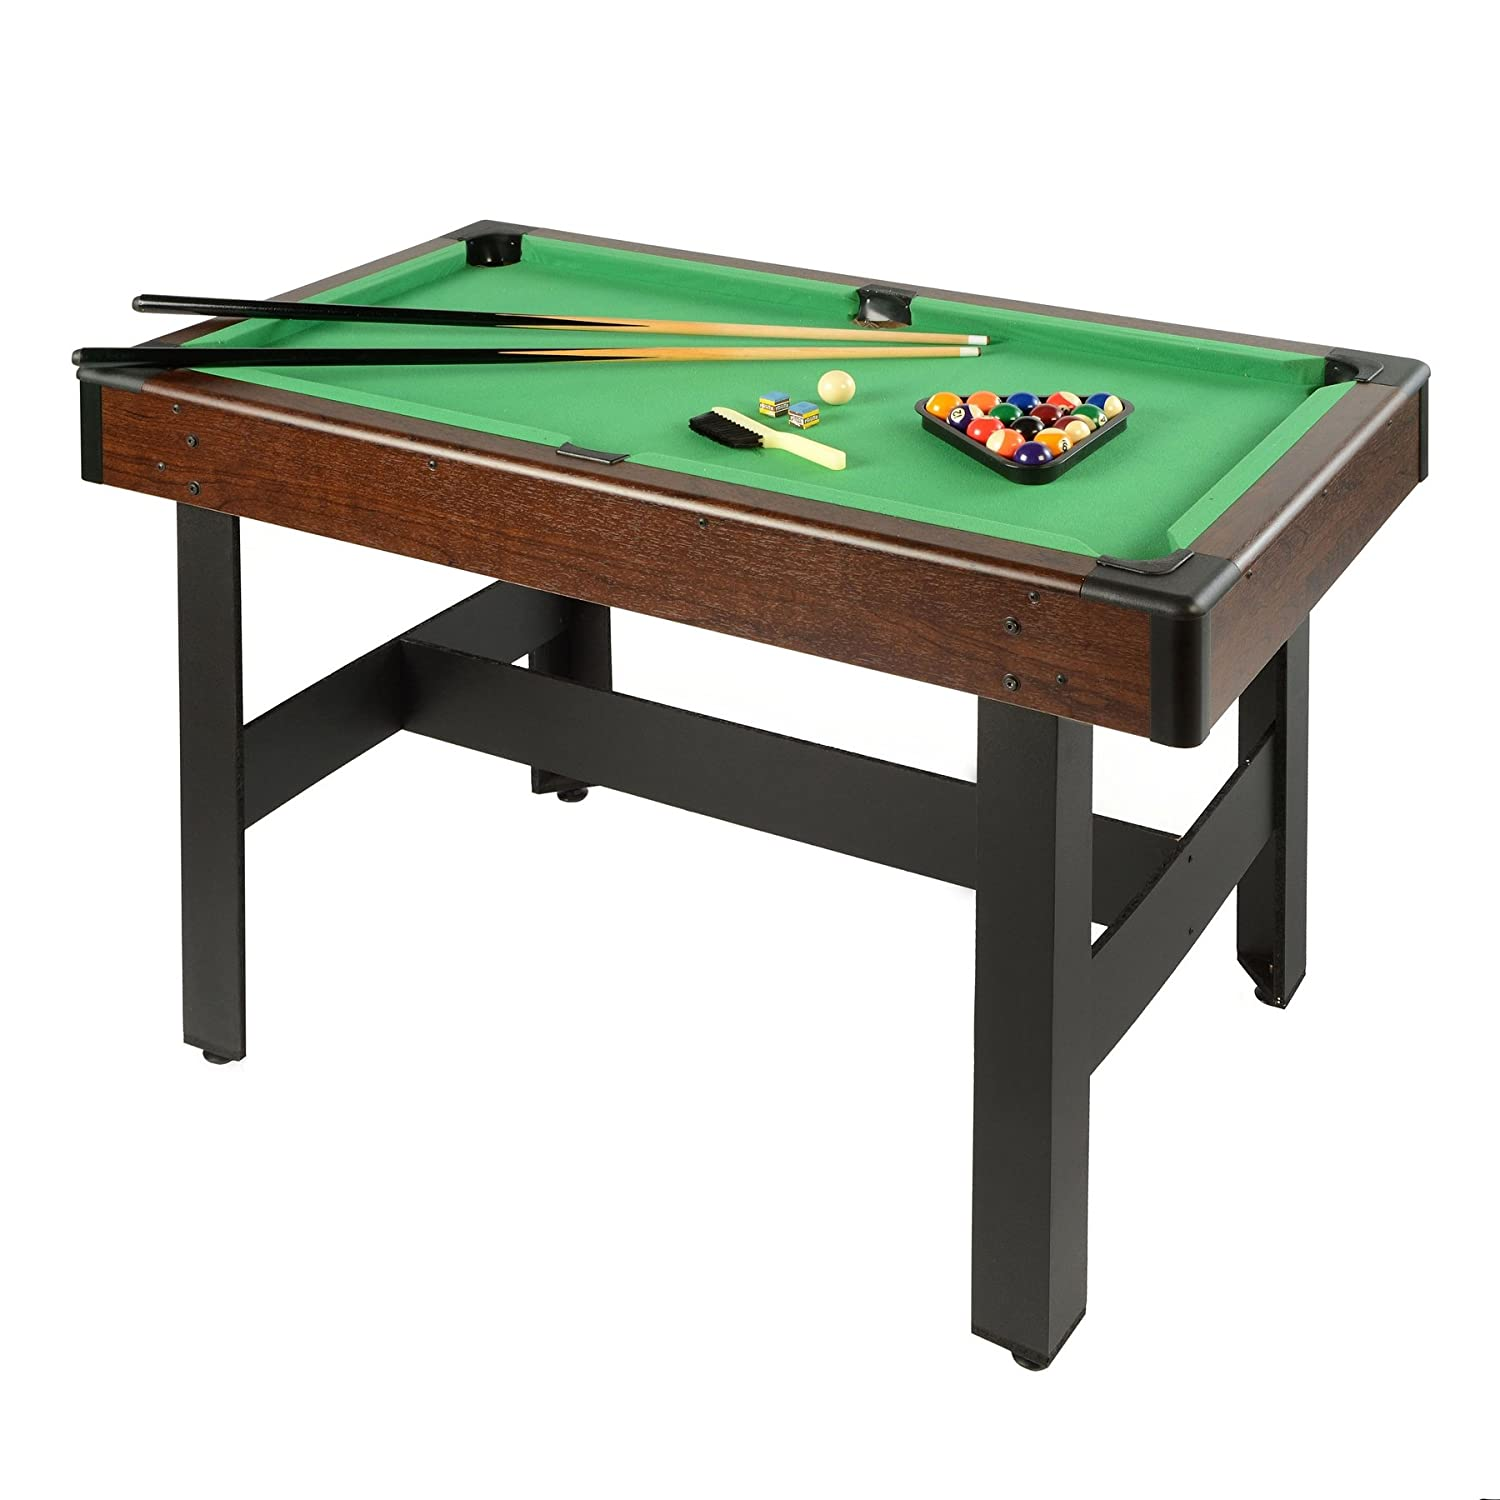 Superbe Billiards Table Review